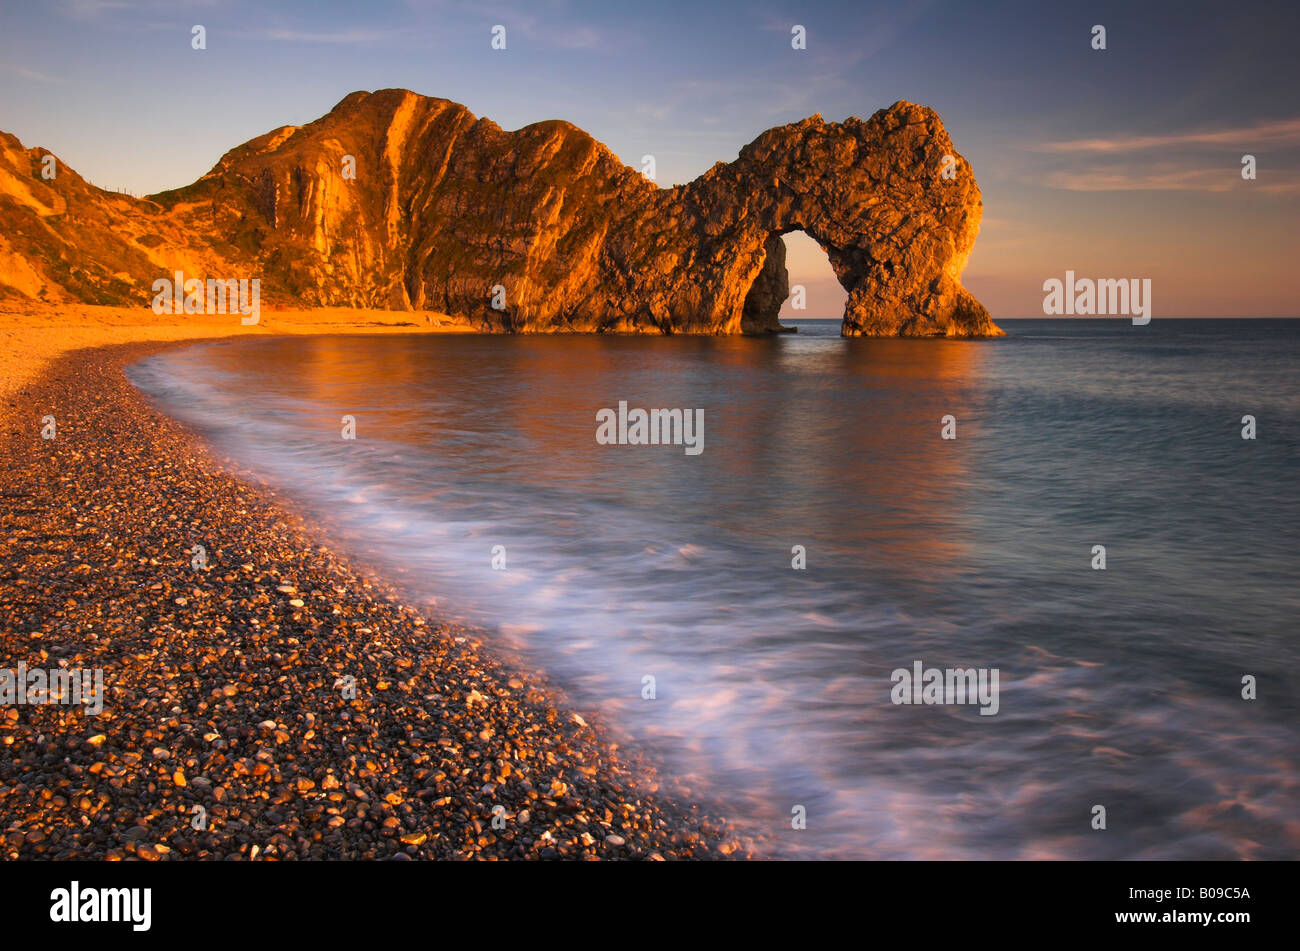 Golden sunlight catches the natural rock arch at Durdle Door in Dorset - Stock Image